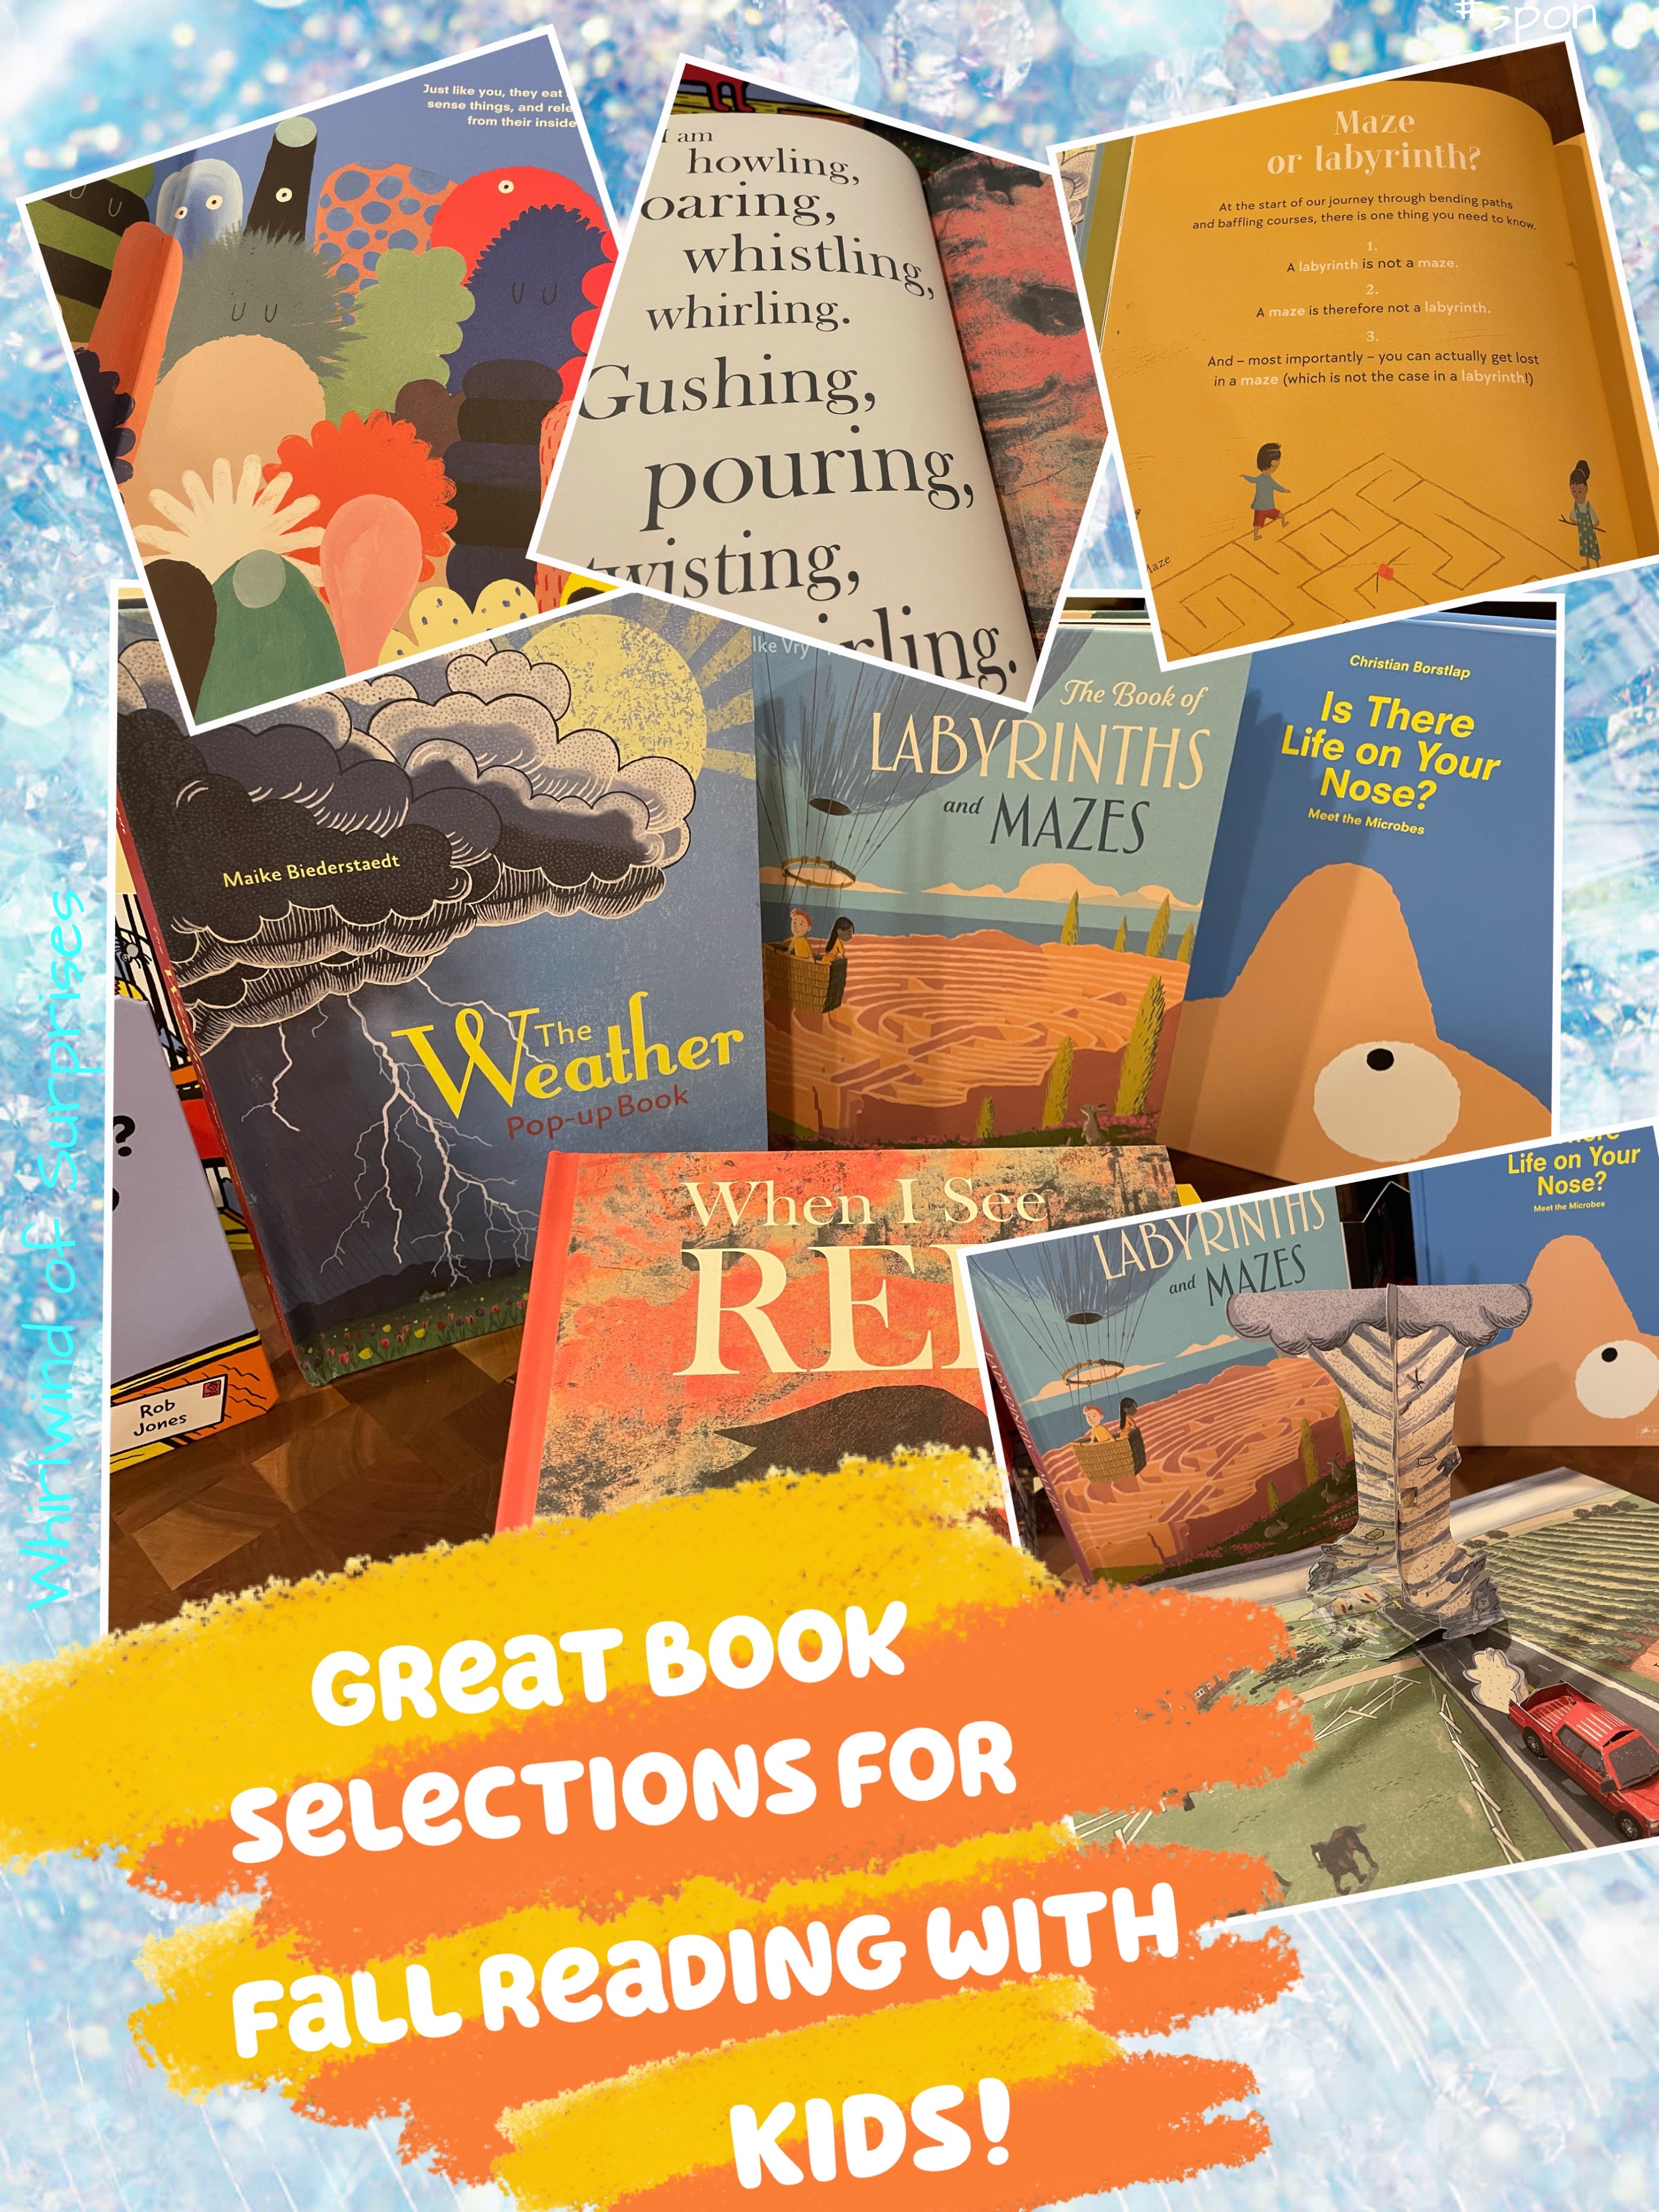 Great new home library additions for the Kids and Adults this fall